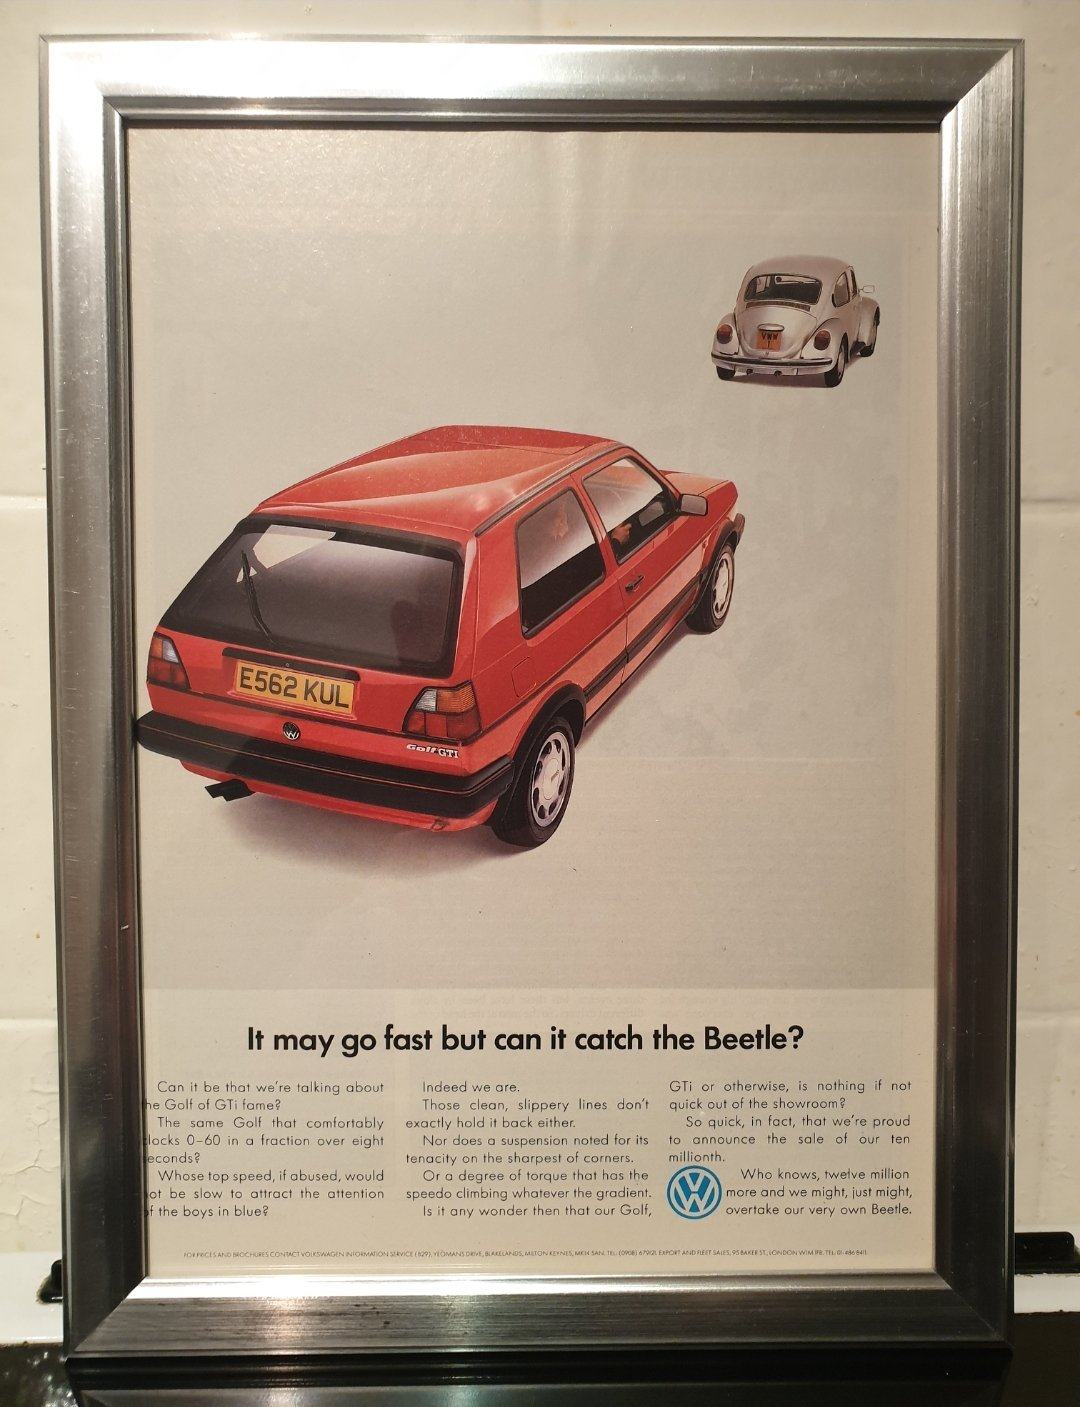 1988 Golf GTi Framed Advert Original  For Sale (picture 1 of 2)